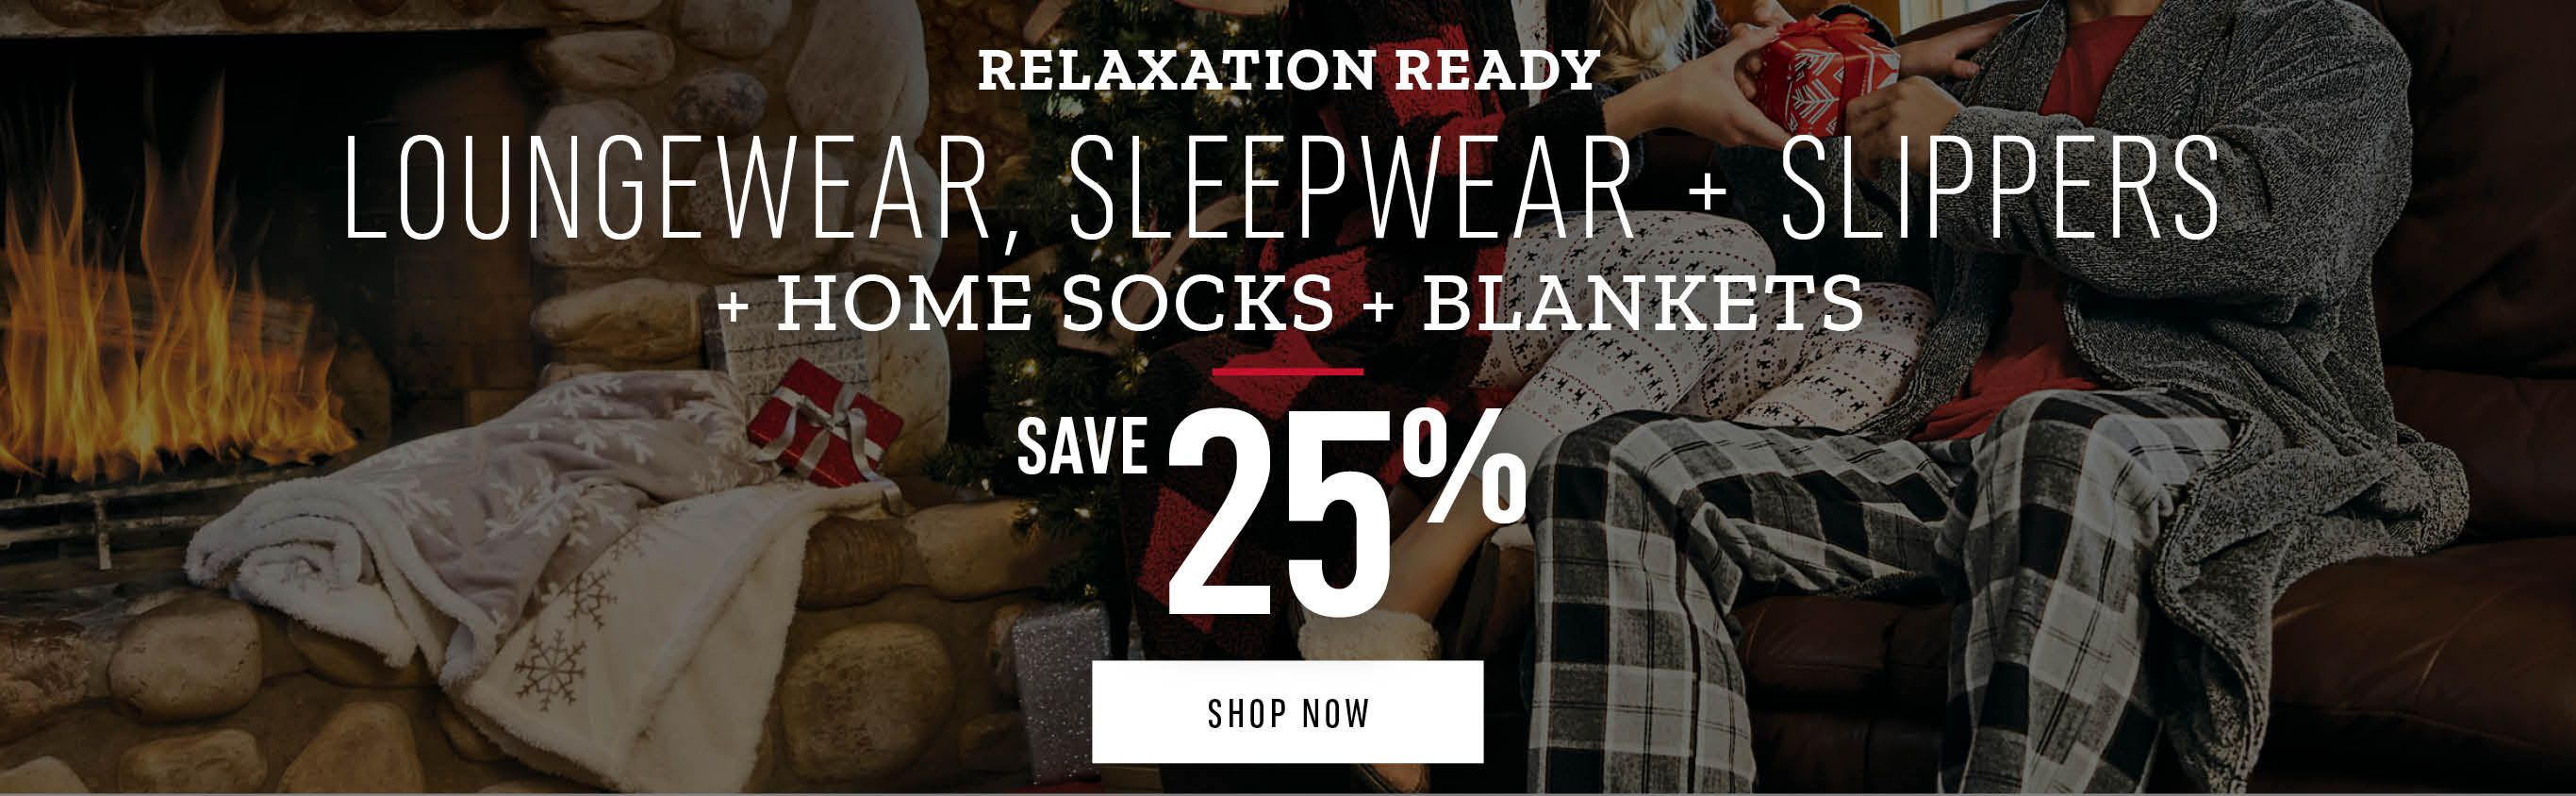 Relaxation Ready Loungewear + Sleepwear + Slippers + Home Socks + Blankets: Save 25%. Shop Now.